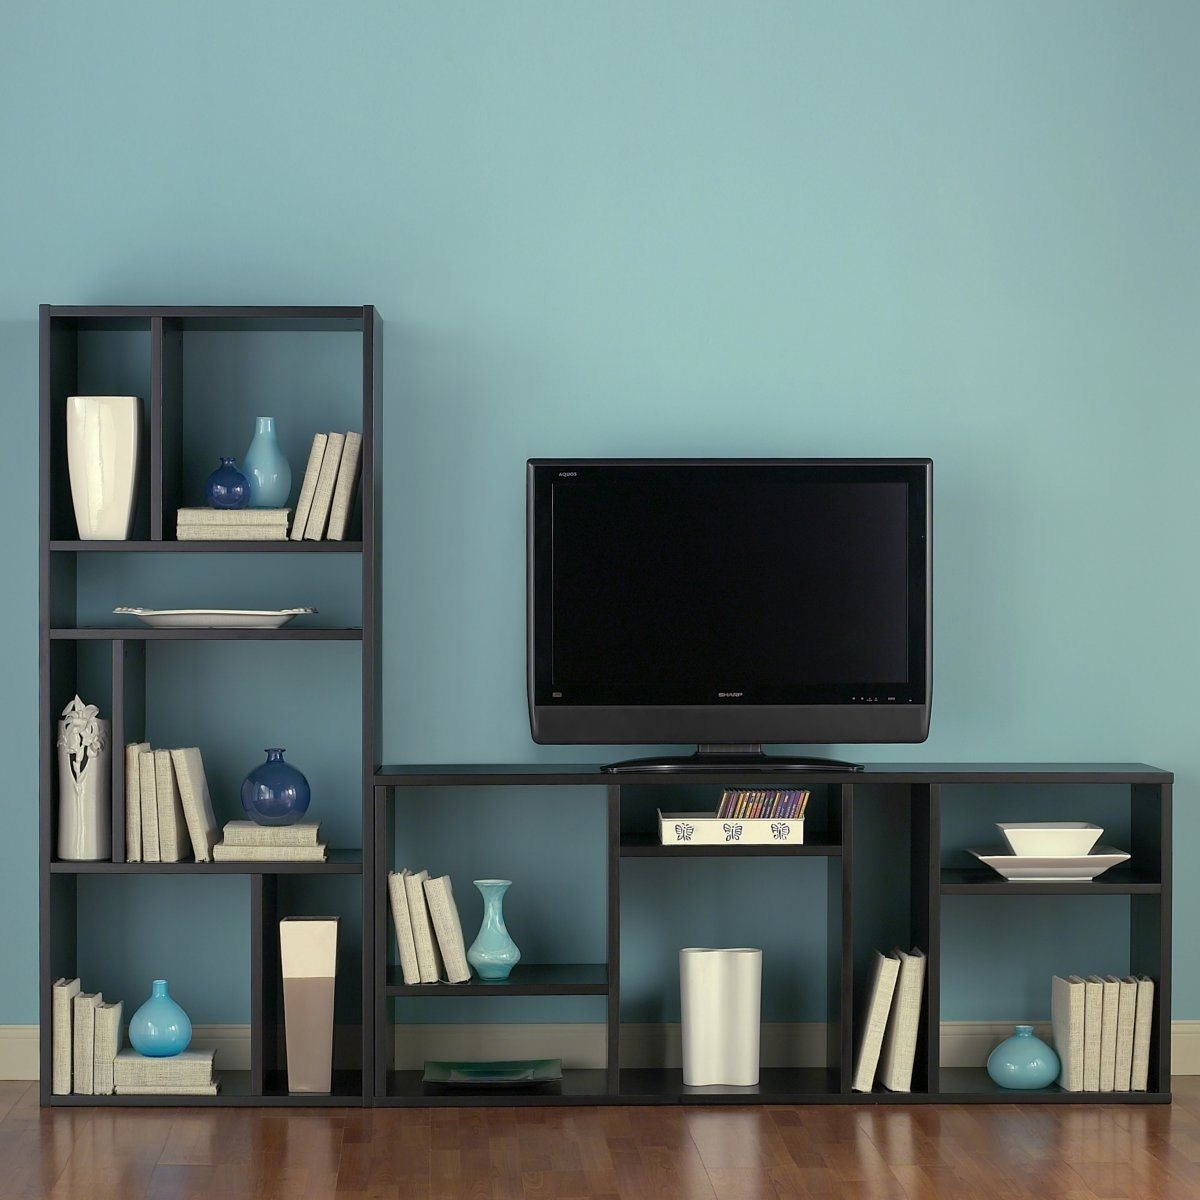 Tv Stand With Bookshelves Idi Design Pertaining To Bookcase Tv (View 14 of 15)